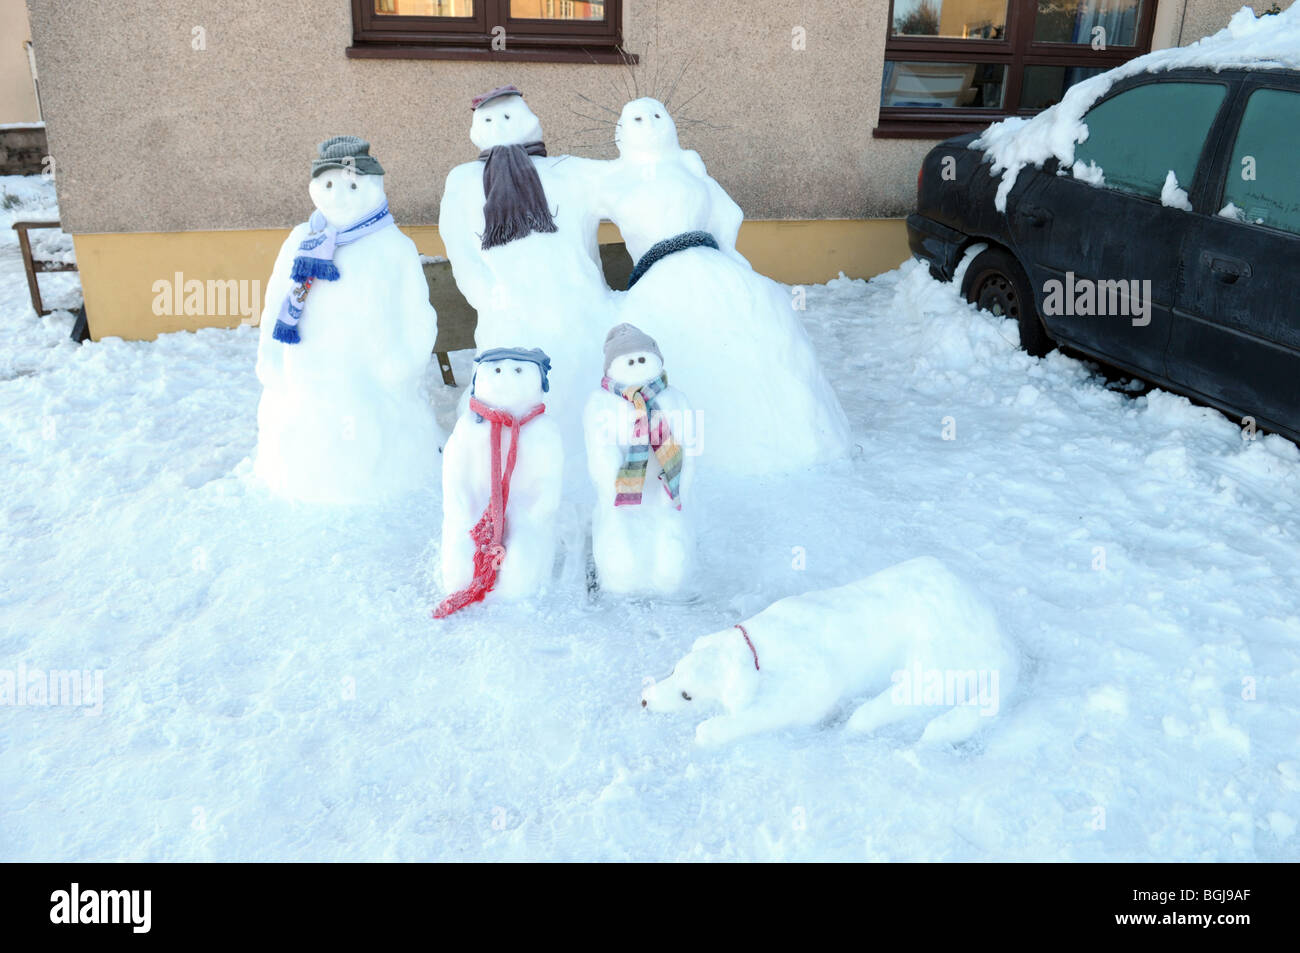 A snowman family - Stock Image